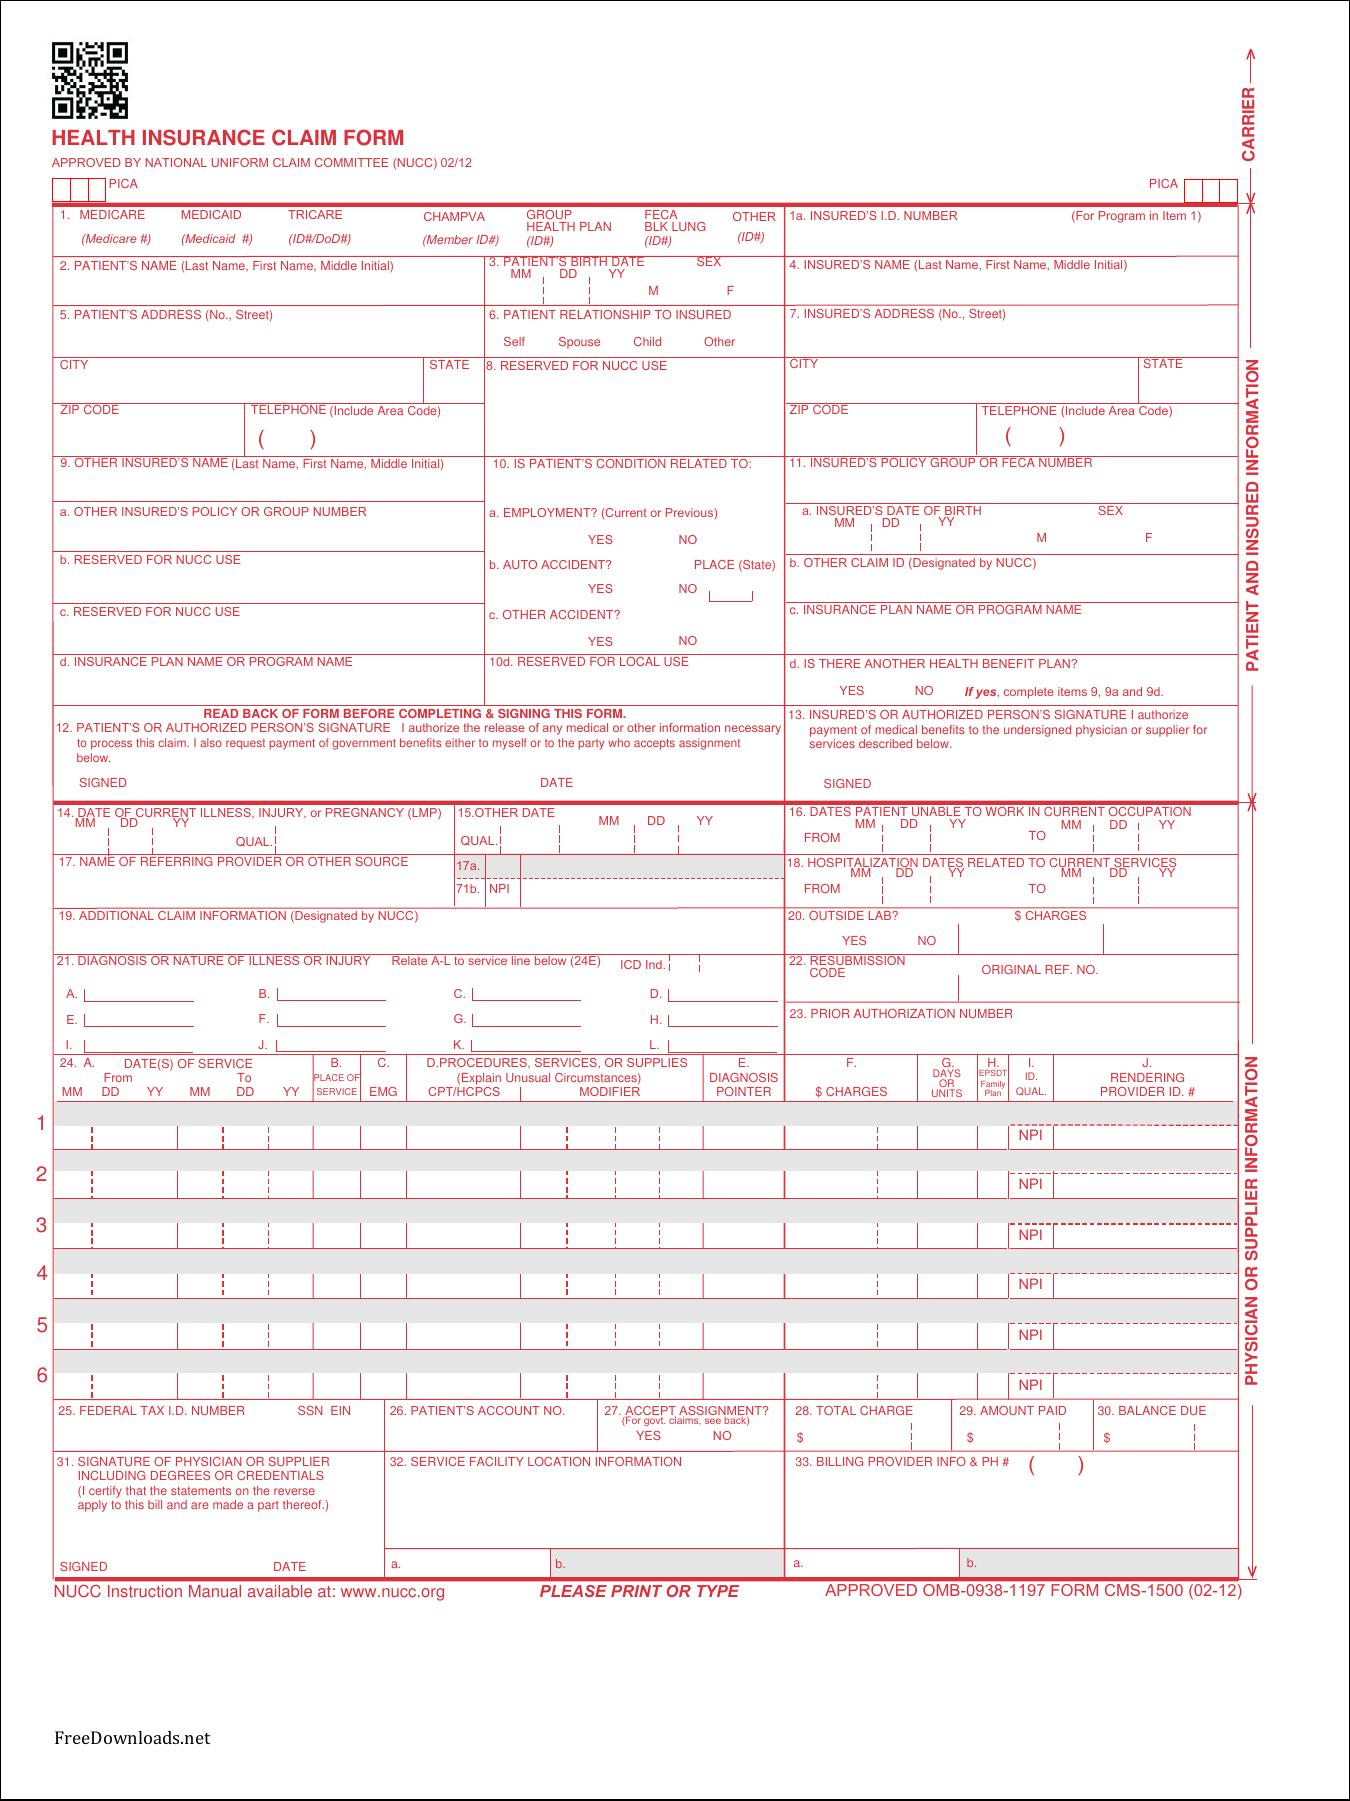 picture regarding Cms 1500 Form Printable named Cms 1500 Assert Style Template - Templates #28714 Resume